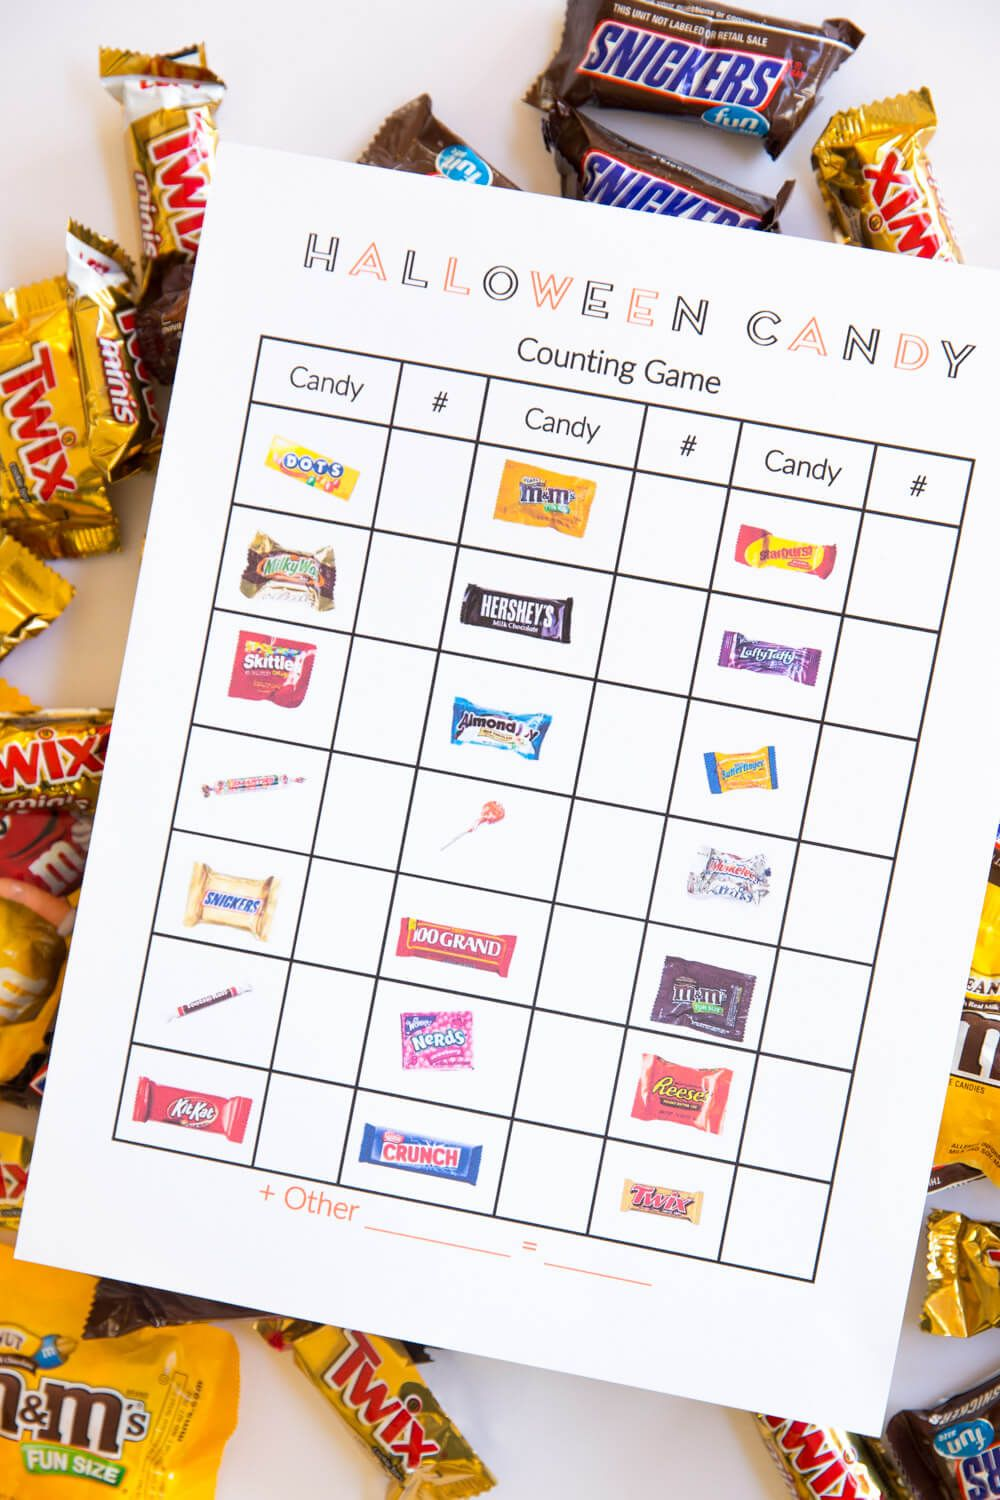 8 Clever Things To Do With All That Halloween Candy So Festive Halloween Candy Candy Easy Halloween [ 1500 x 1000 Pixel ]